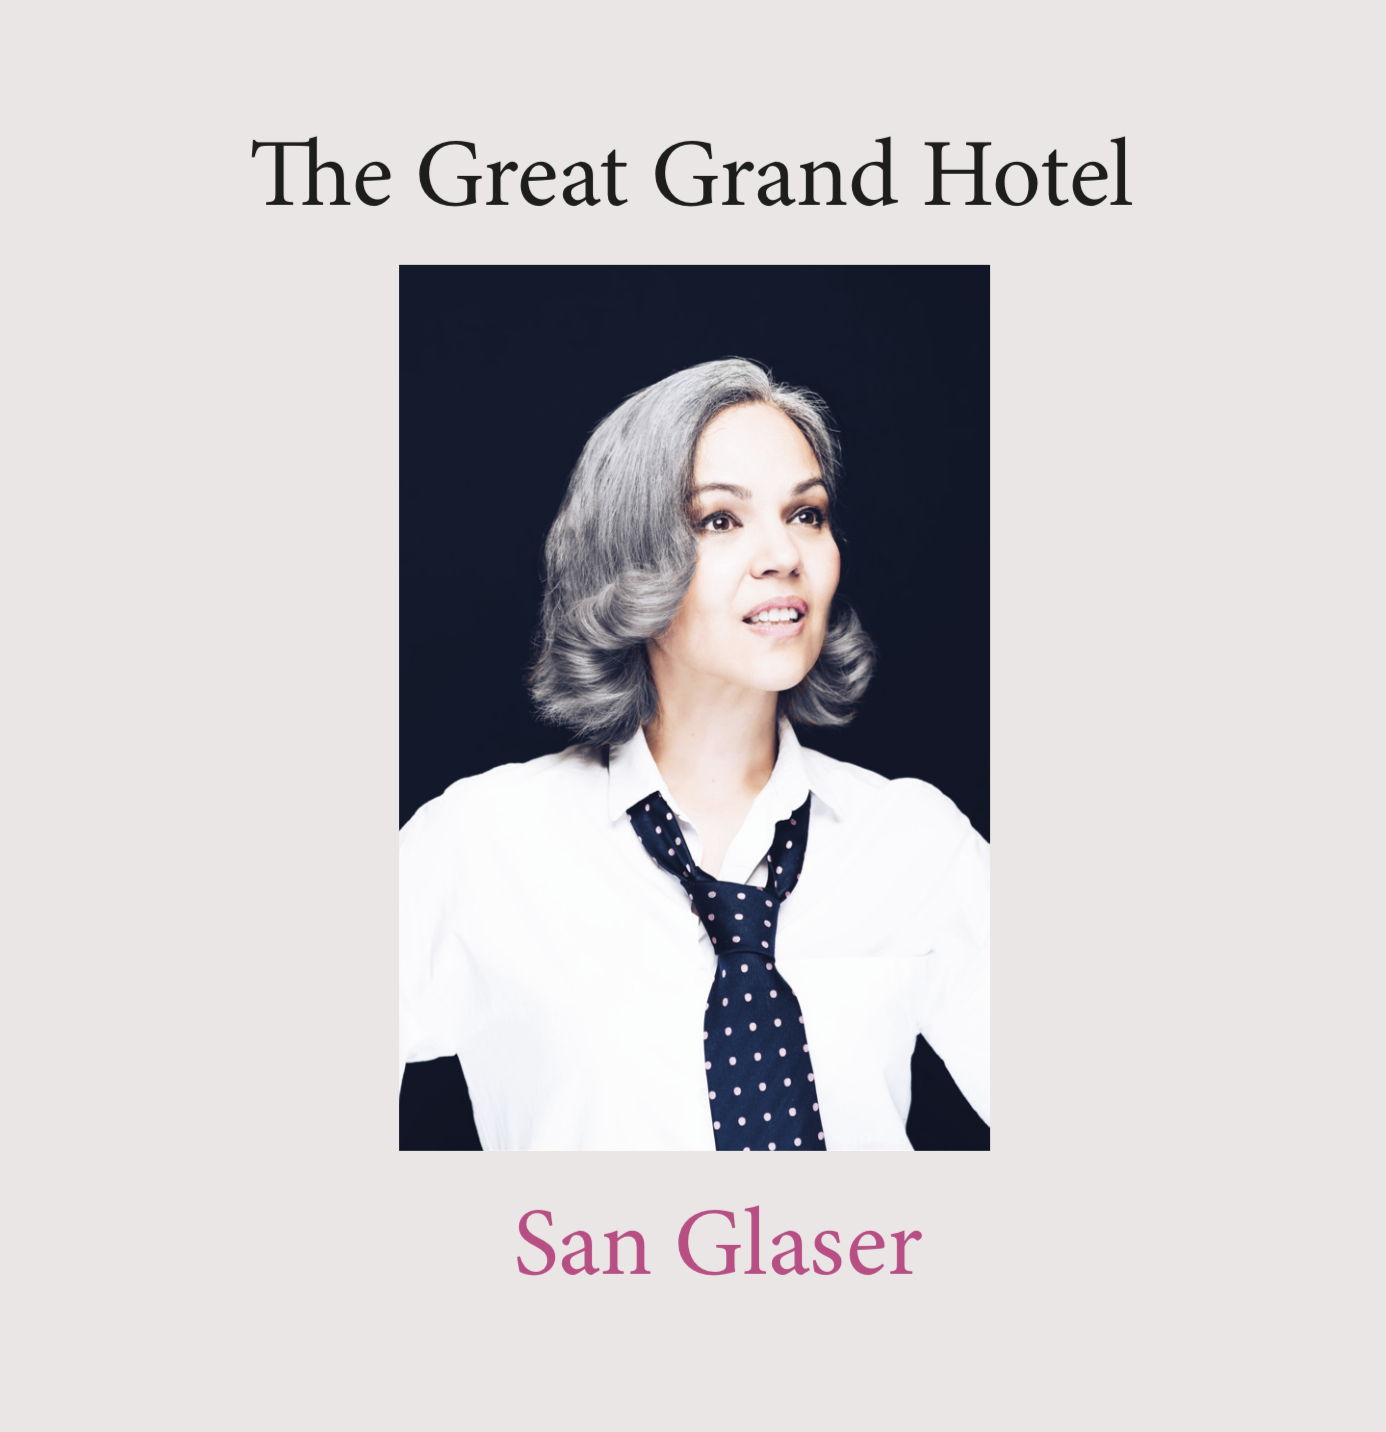 The Great Grand Hotel